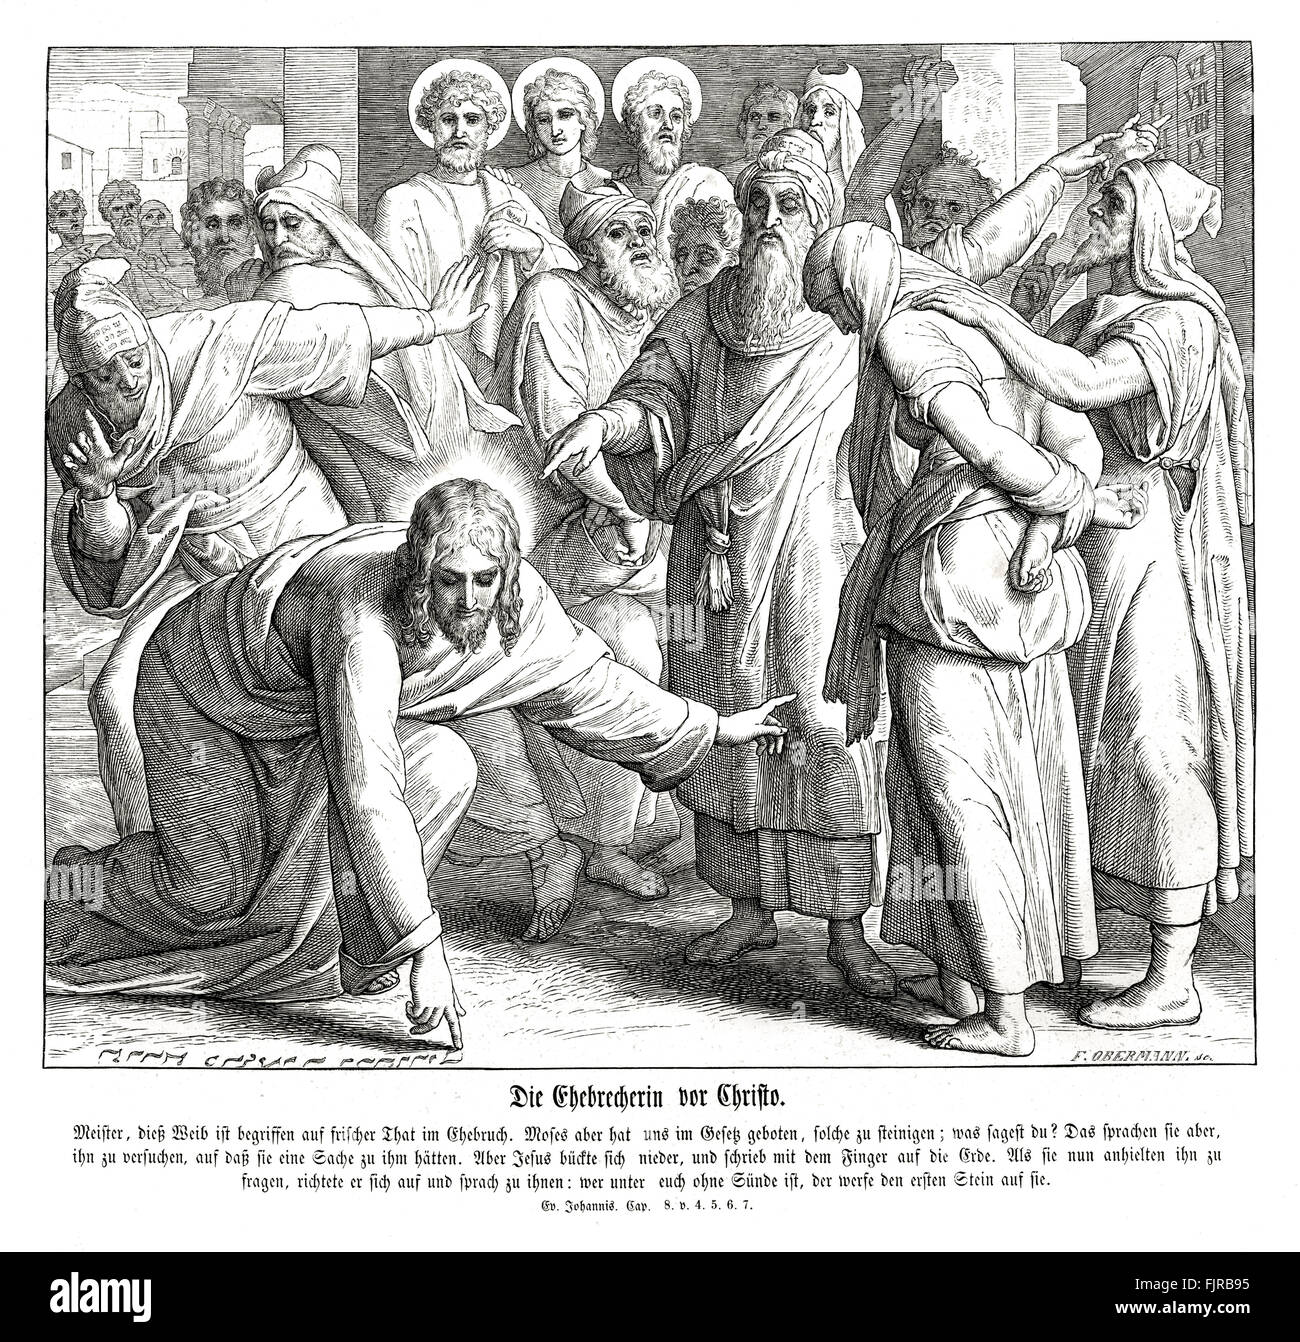 Jesus and the adulterous woman, Gospel of John chapter VIII verses 4 - 7 ' Now Moses in the law commanded us, - Stock Image